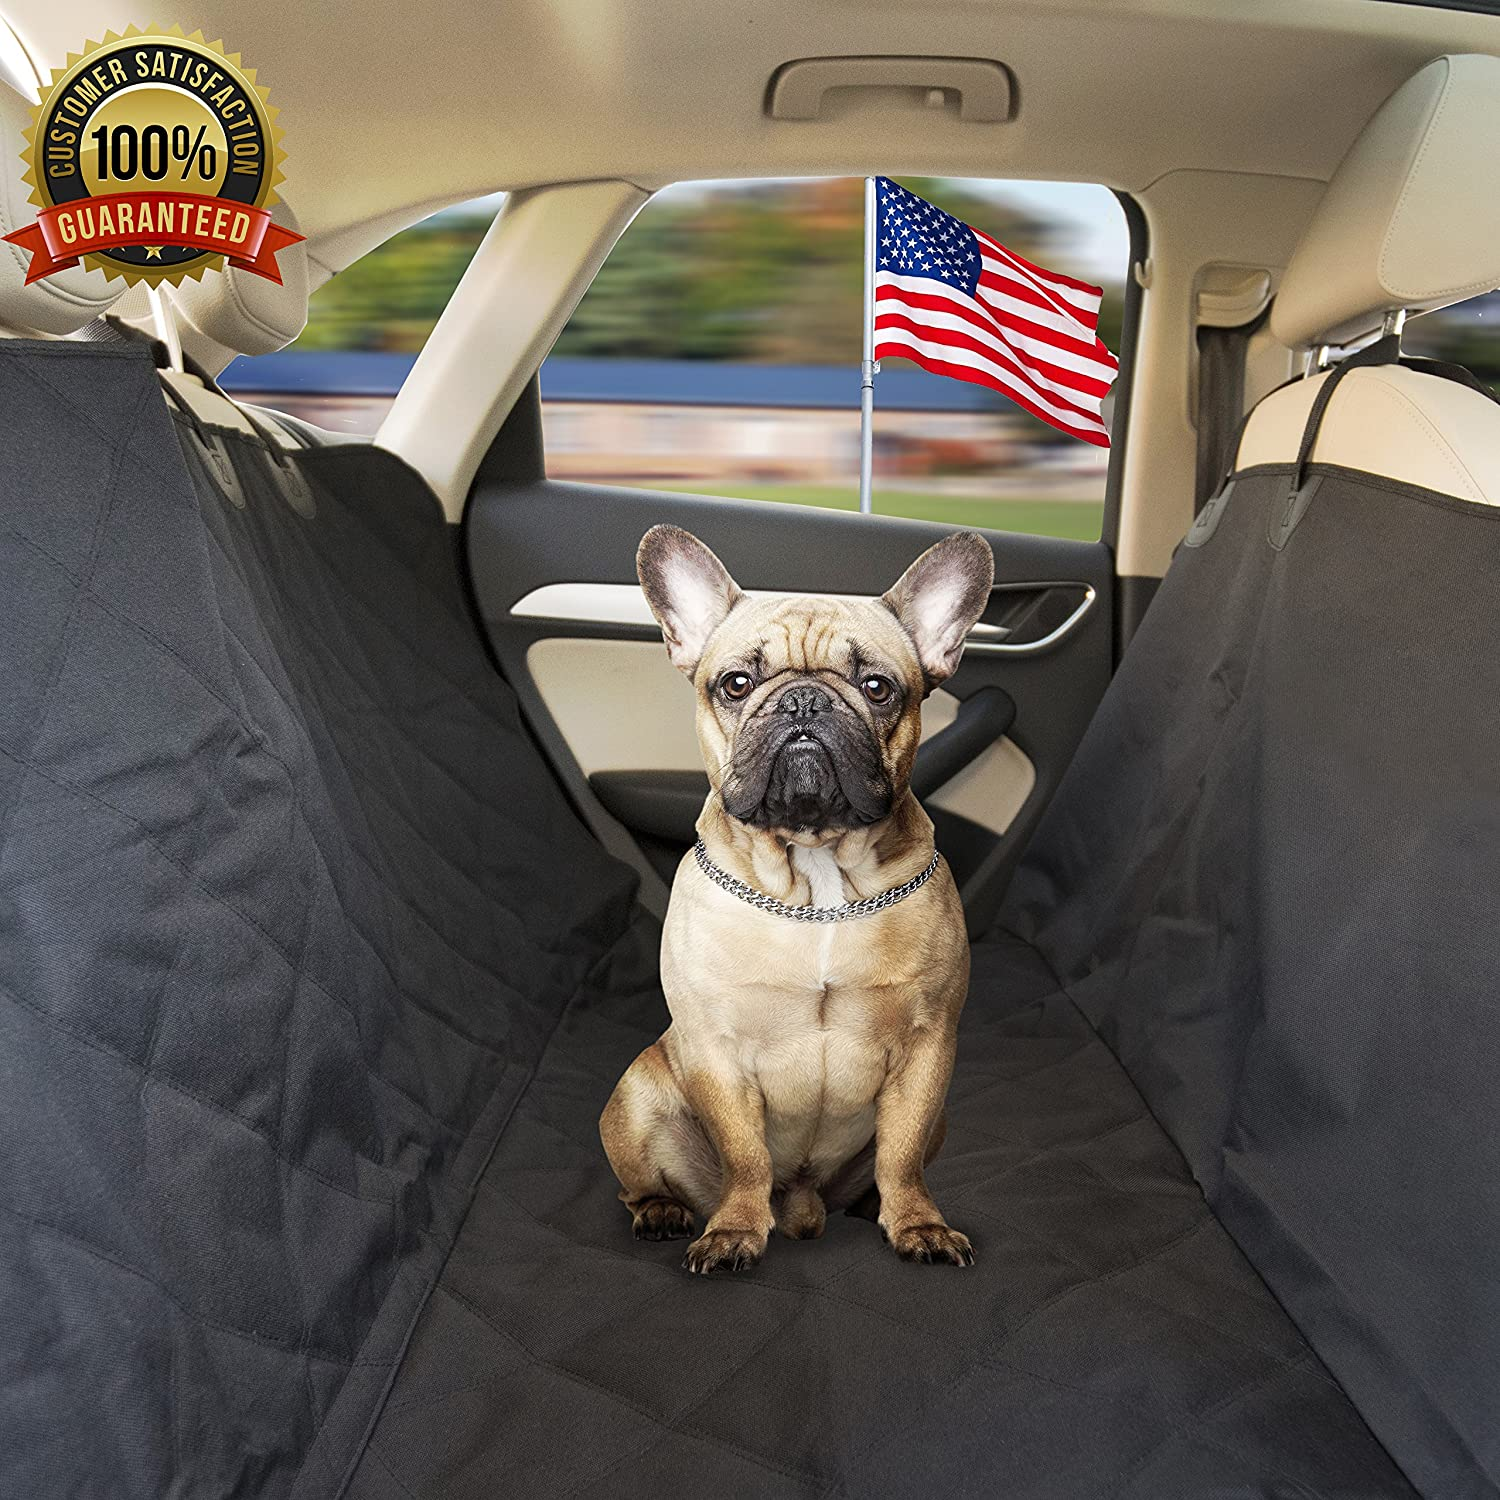 Pet-A-Bite Reliable Pet Car Seat Cover Free from Dog Hair on the Back Seat Waterproof Luxury Hammock Protector w Flaps Storage Bag. Vehicle SUV Puppy Comfort Accessory.